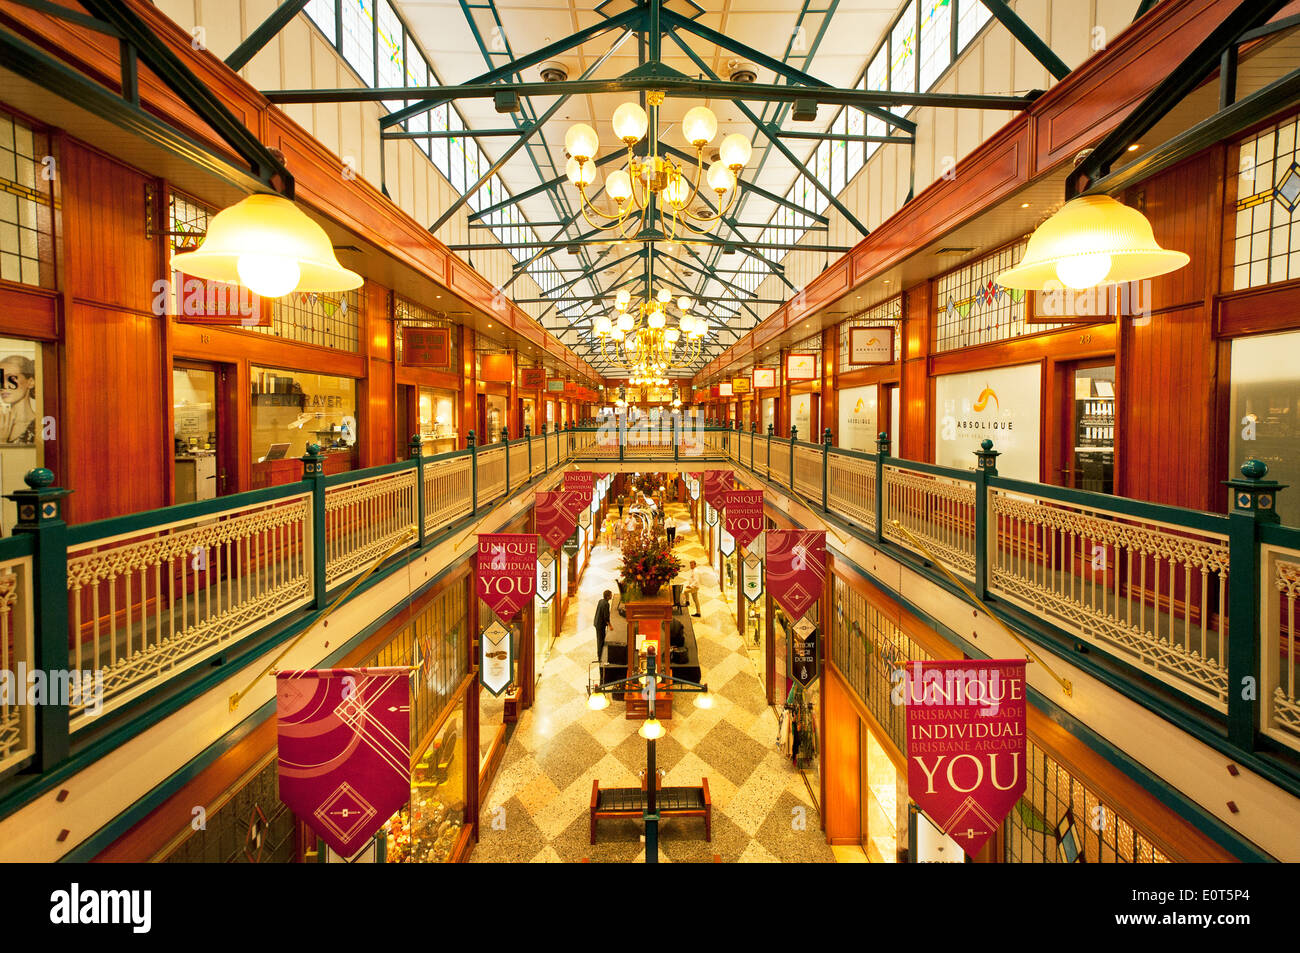 Voir dans Queen Street Arcade à Brisbane. Photo Stock